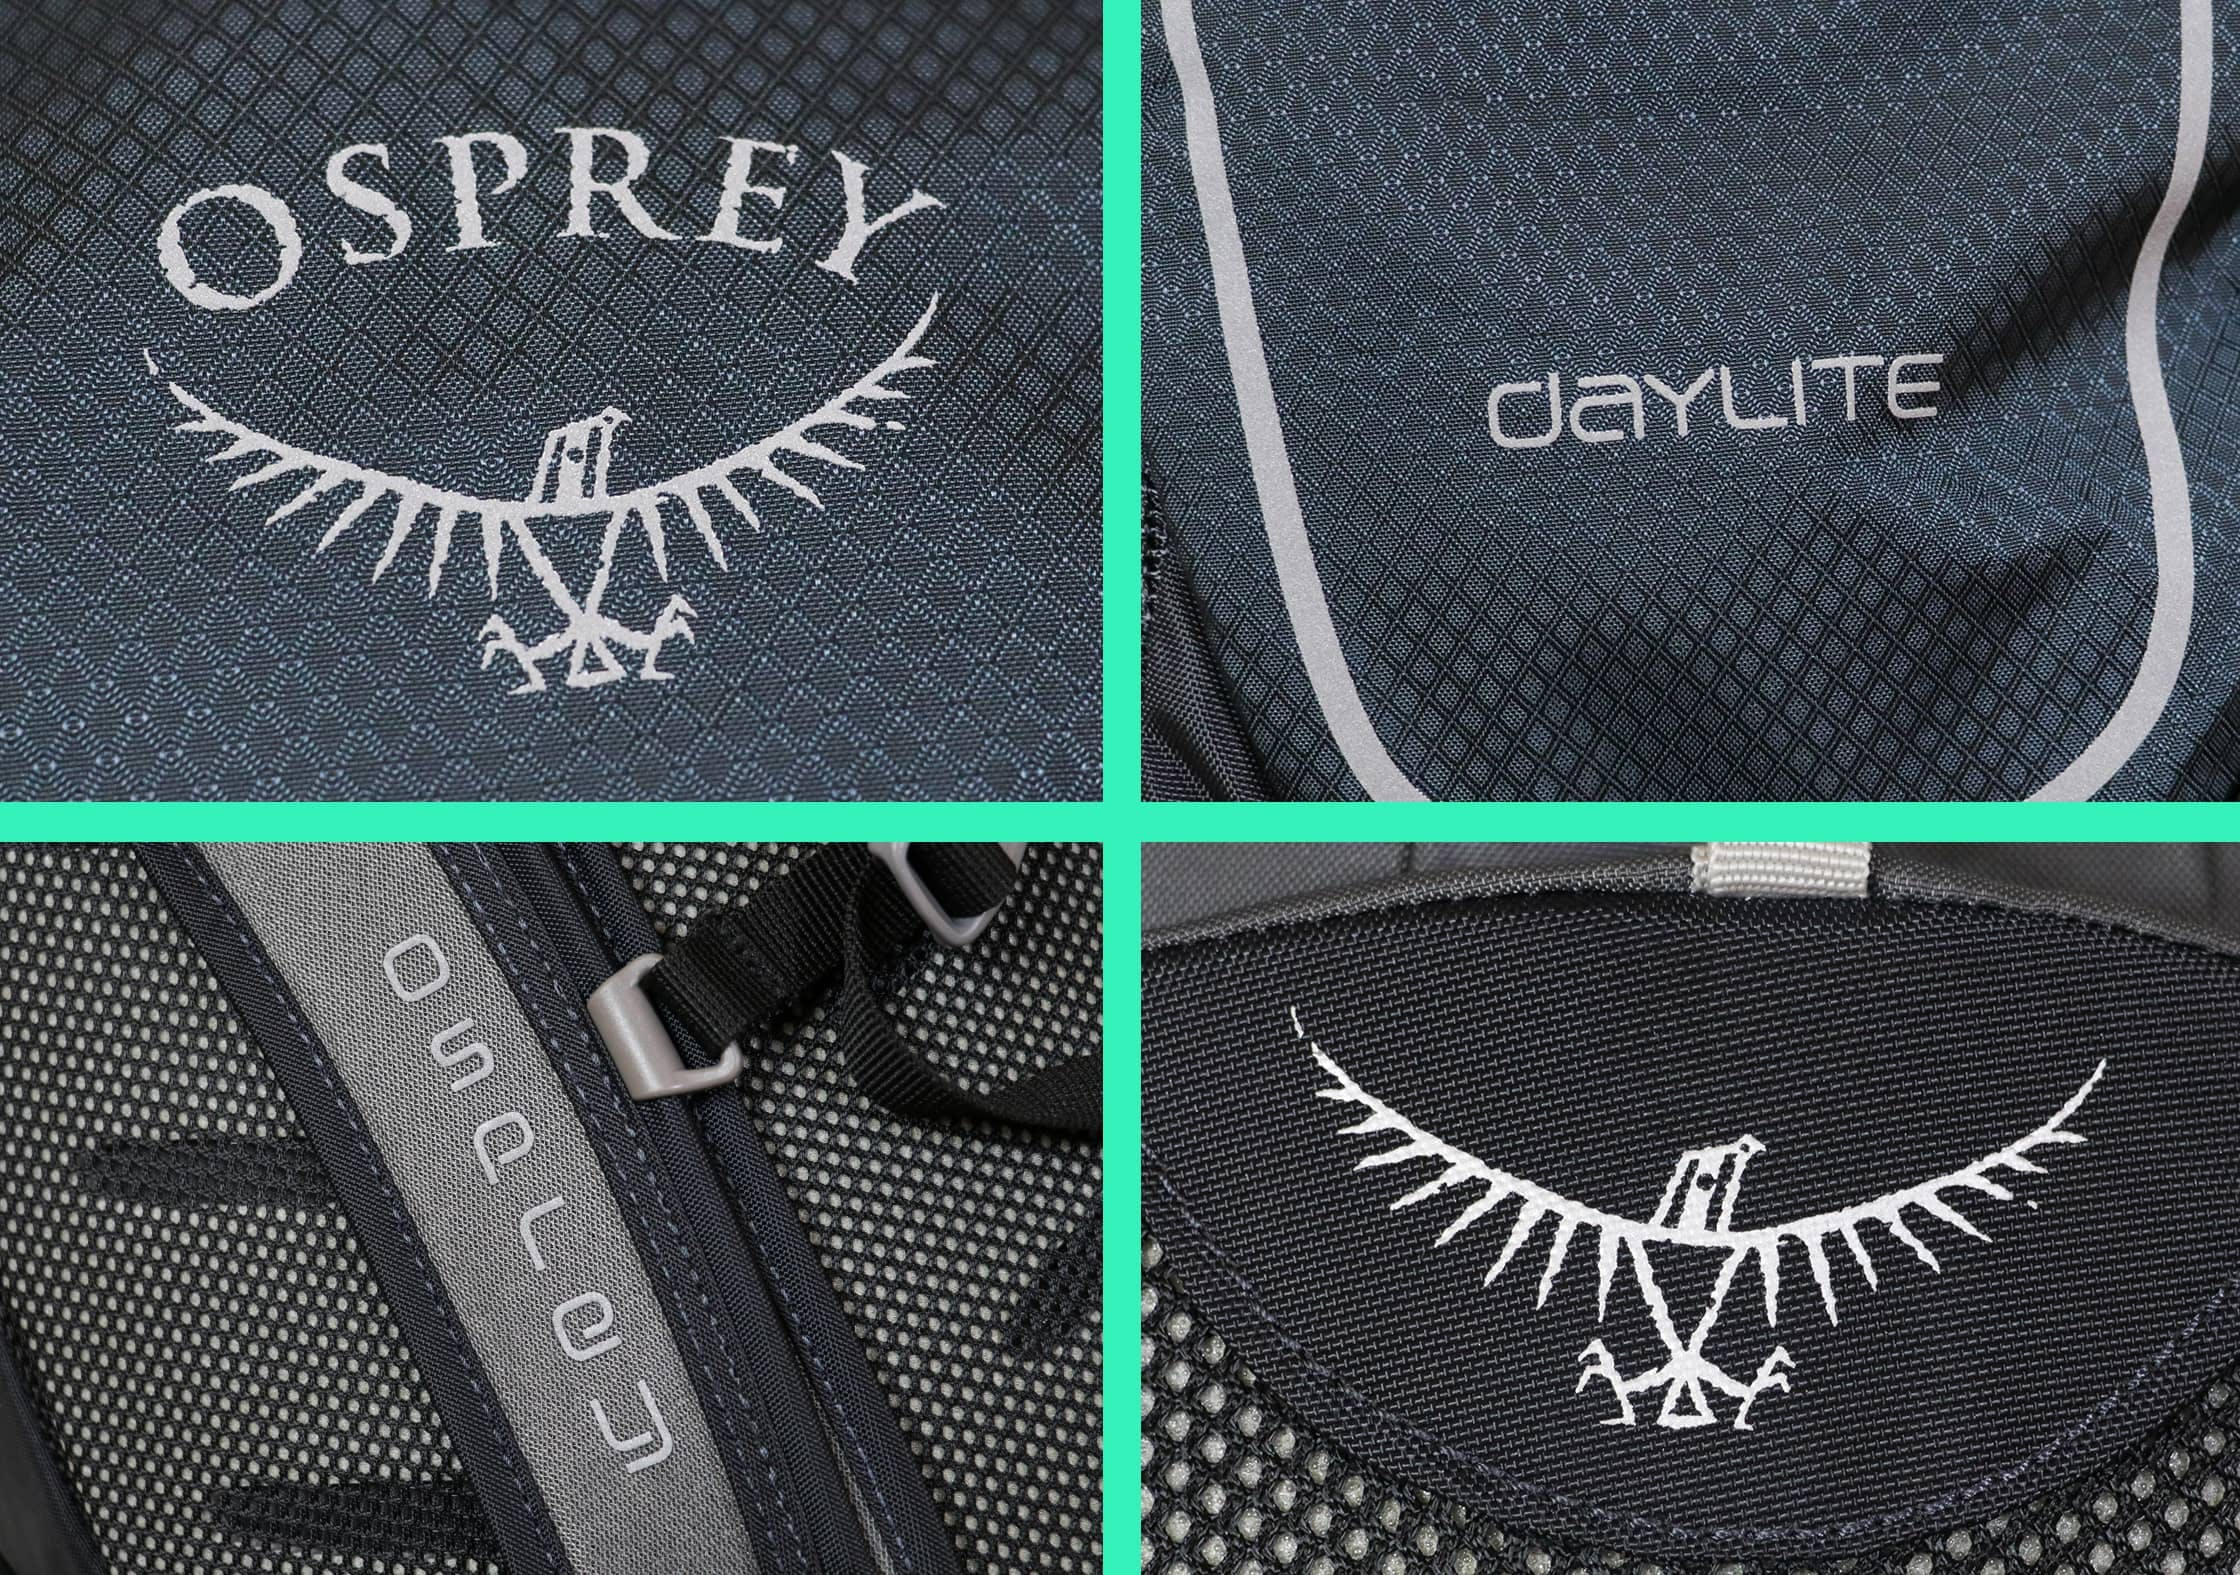 Branding On The Osprey Daylite